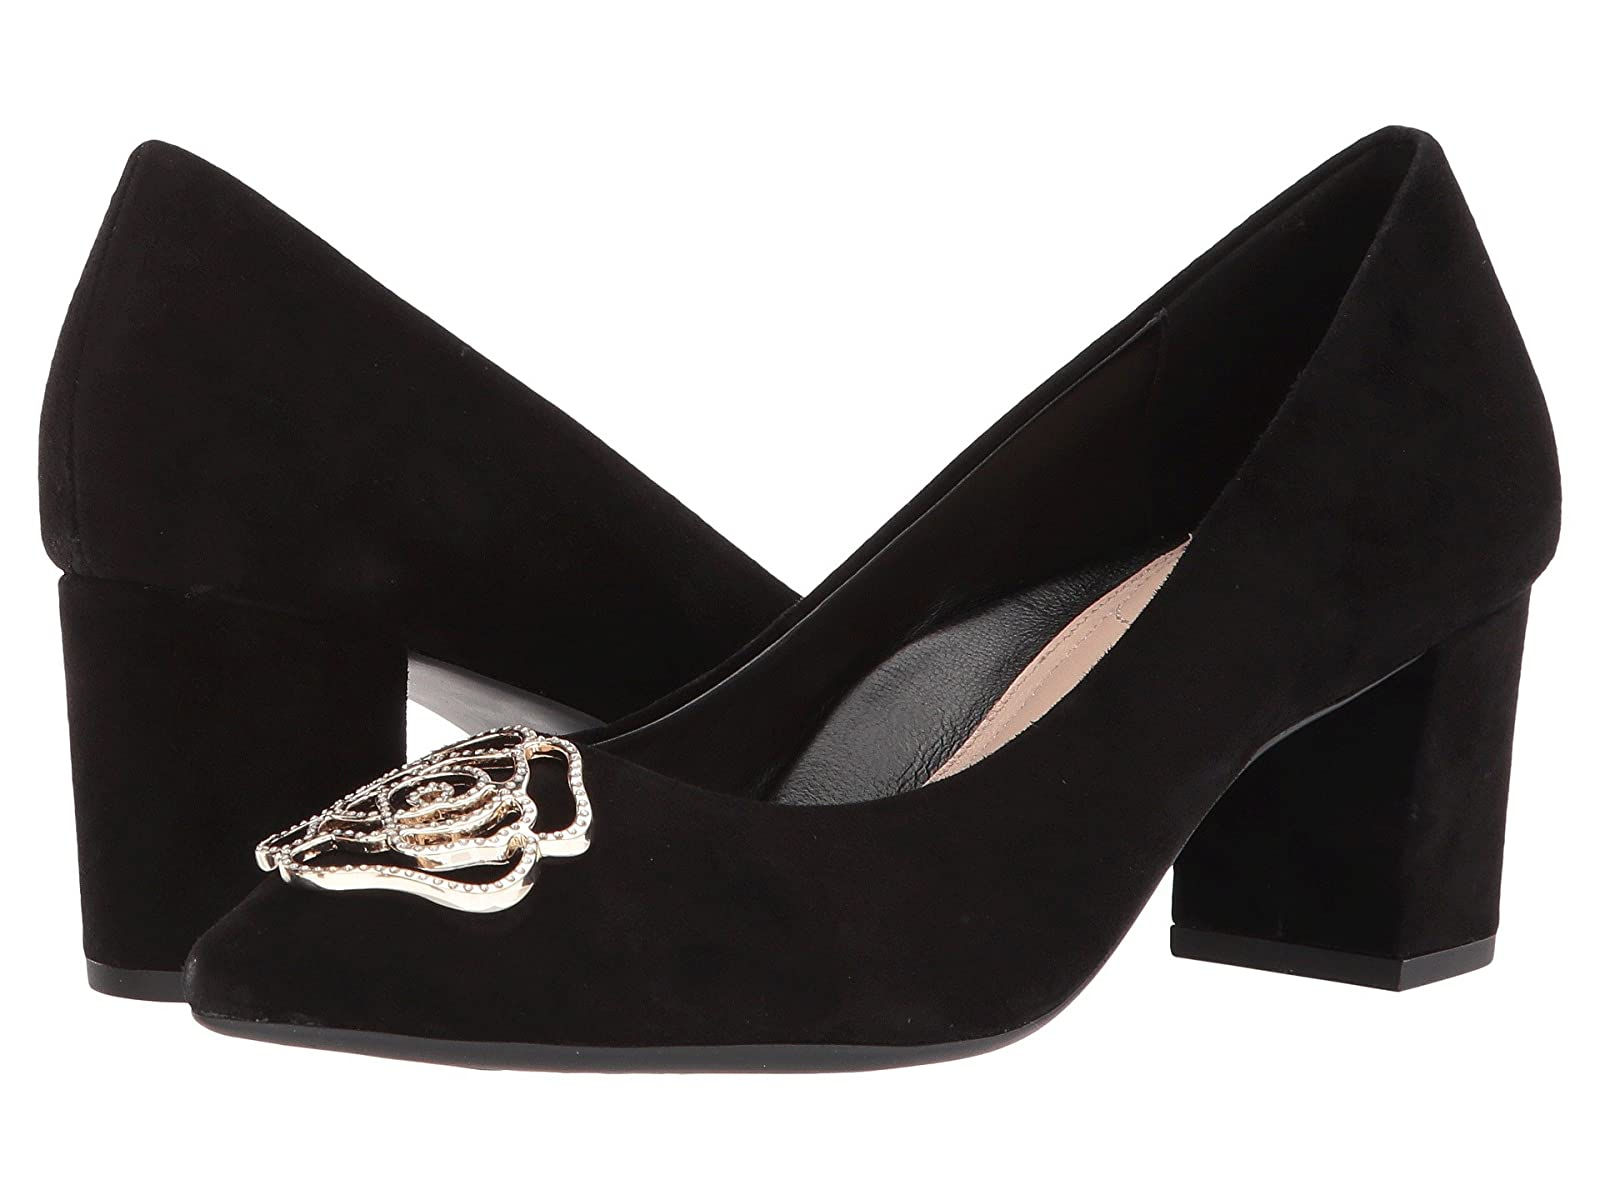 Taryn Rose MaciCheap and distinctive eye-catching shoes